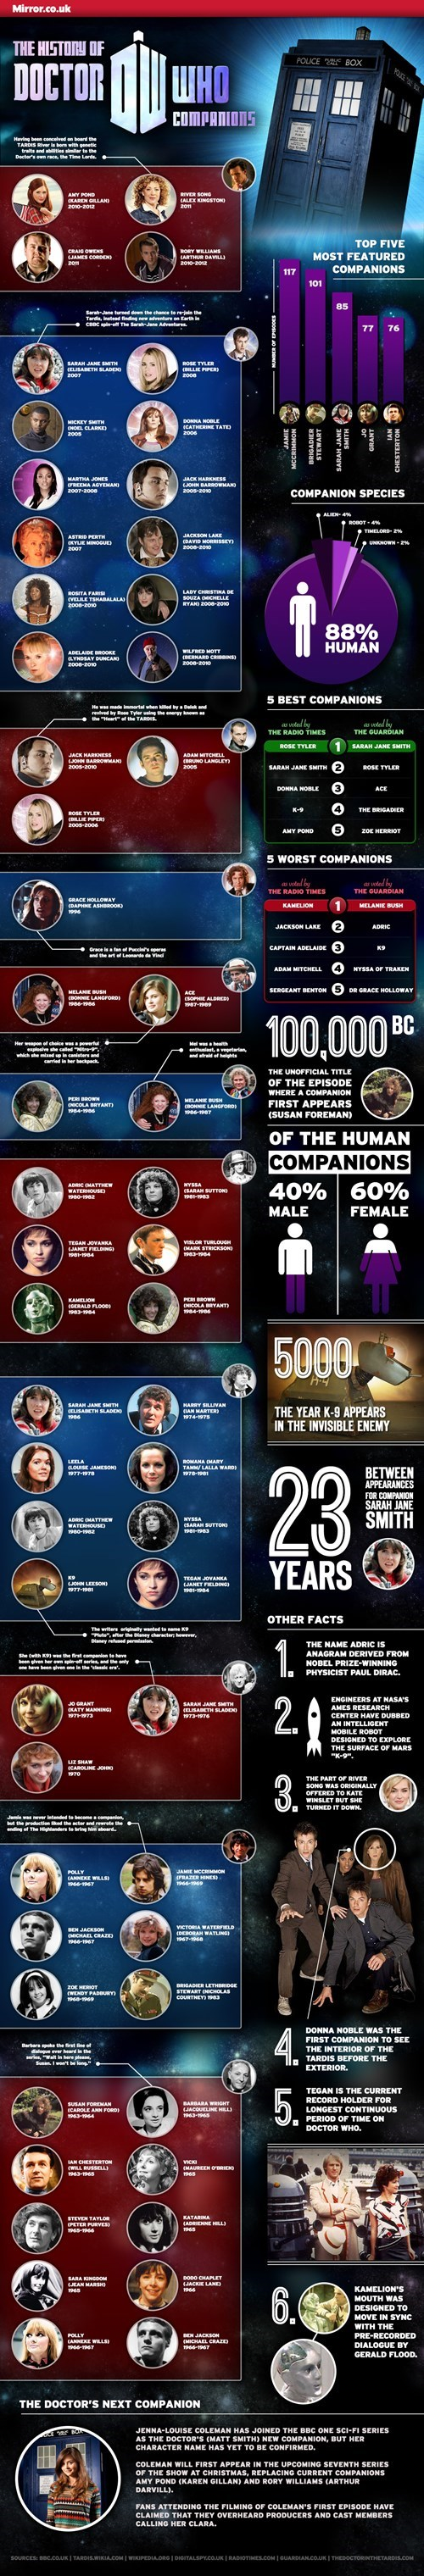 doctor who companion infographic - 8158564096